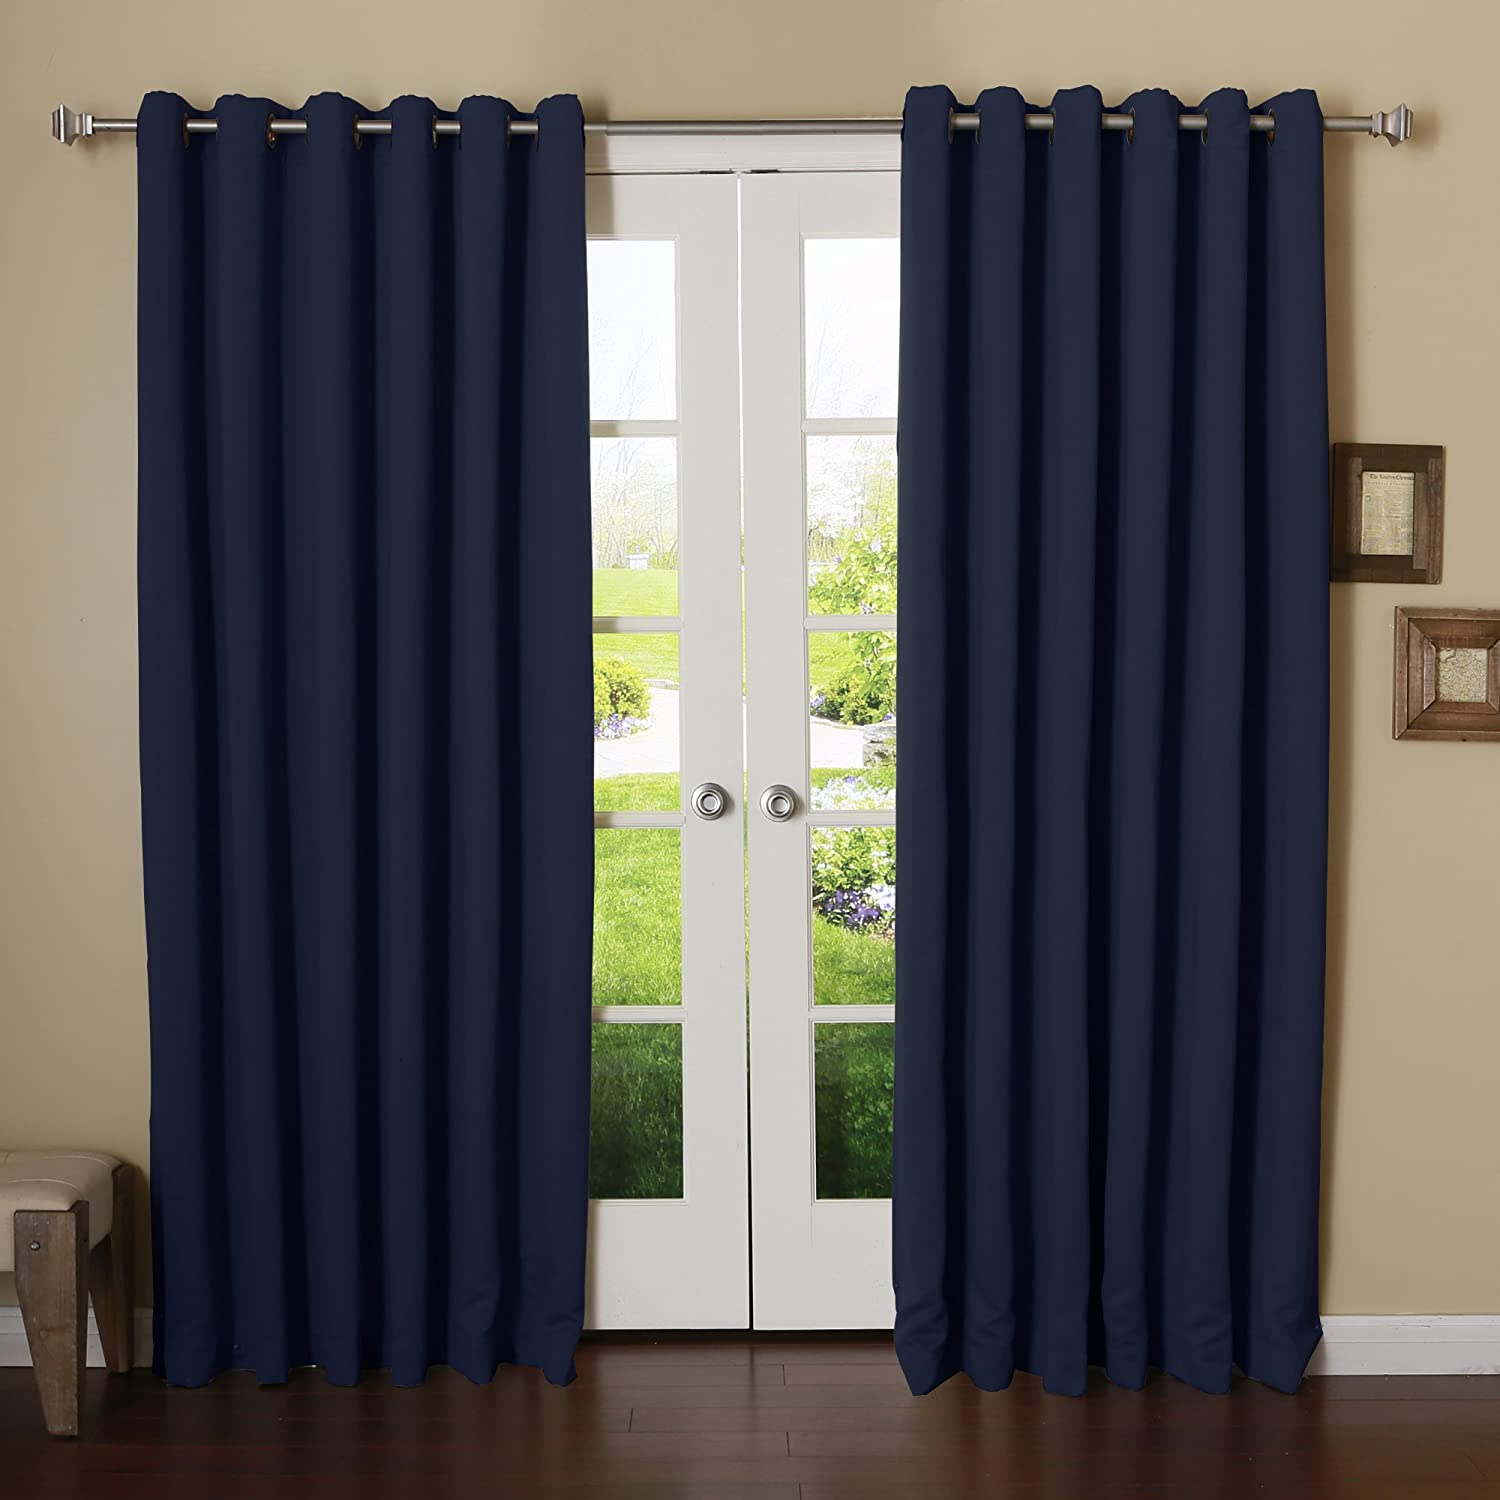 Best Home Fashion Wide Width Thermal Insulated Blackout Curtain - Antique Bronze Grommet Top - Navy